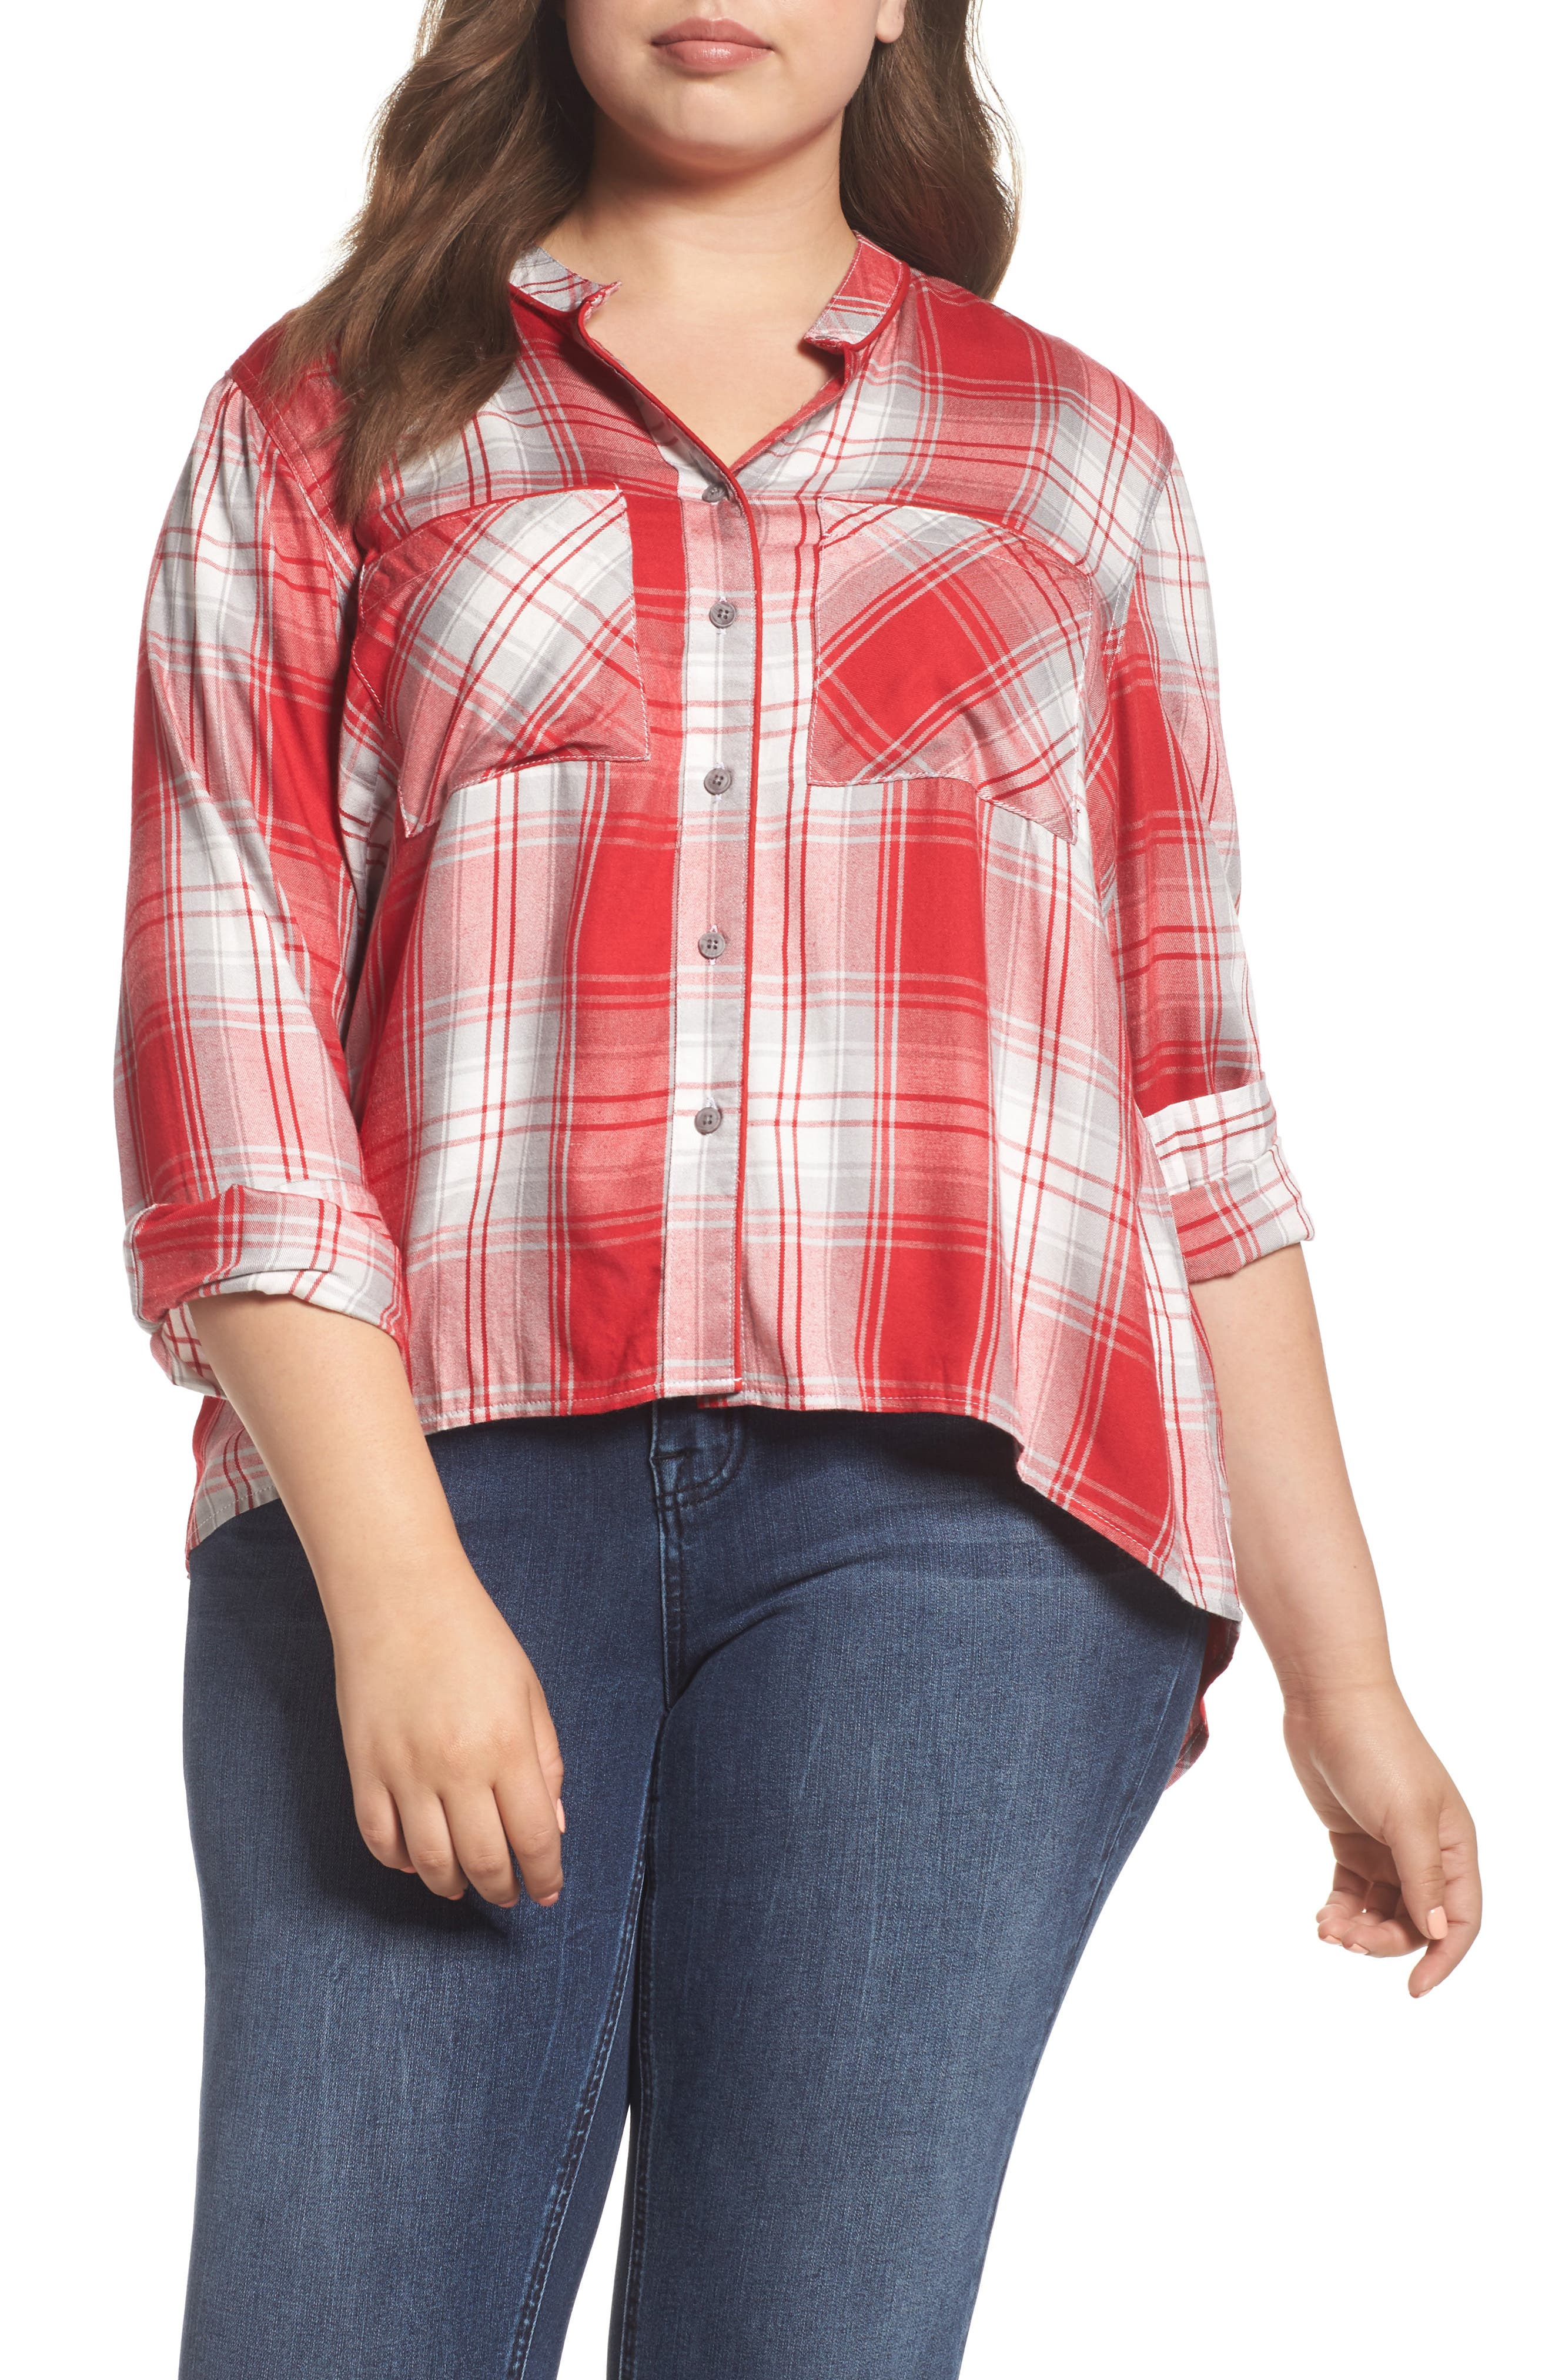 Alternate Image 1 Selected - Melissa McCarthy Seven7 Plaid Shirt (Plus Size)